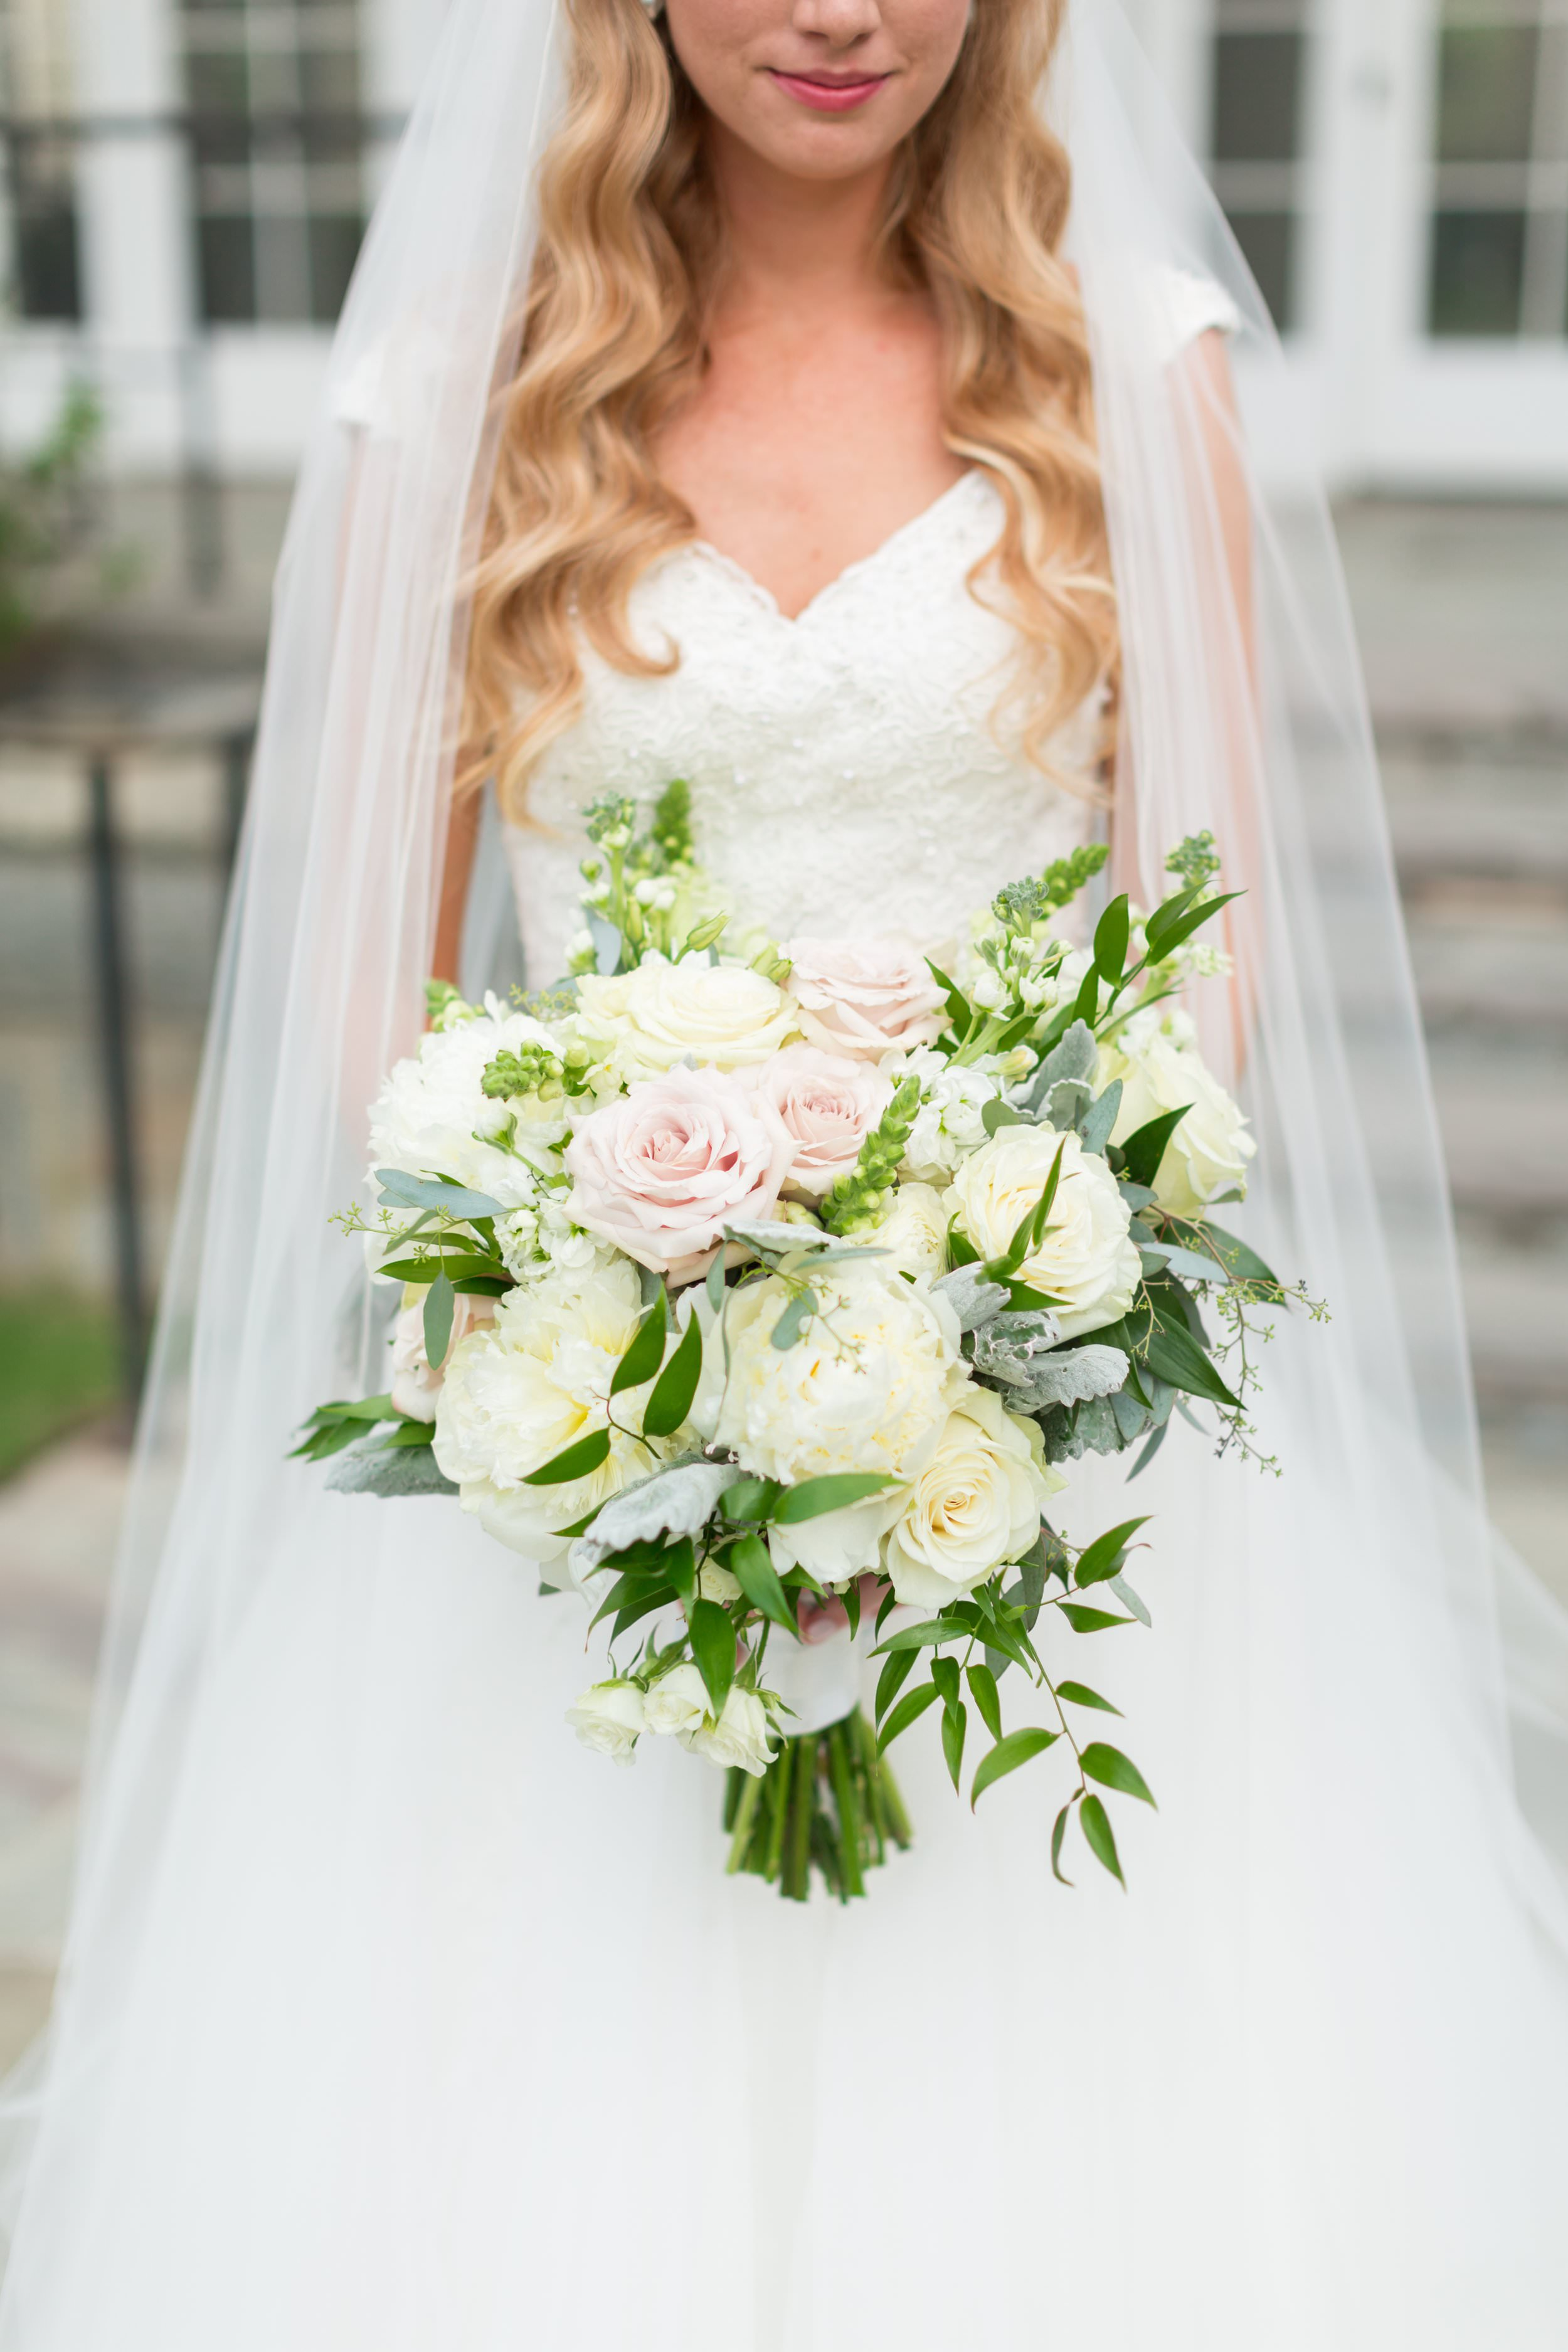 This blush and white bouquet by  Atlanta wedding florist Tulip Blooming Creations makes me swoon! It feels like she's carrying an English garden in her hands. To view more from Mac and Brittney's  Piedmont Driving Club wedding, click here .